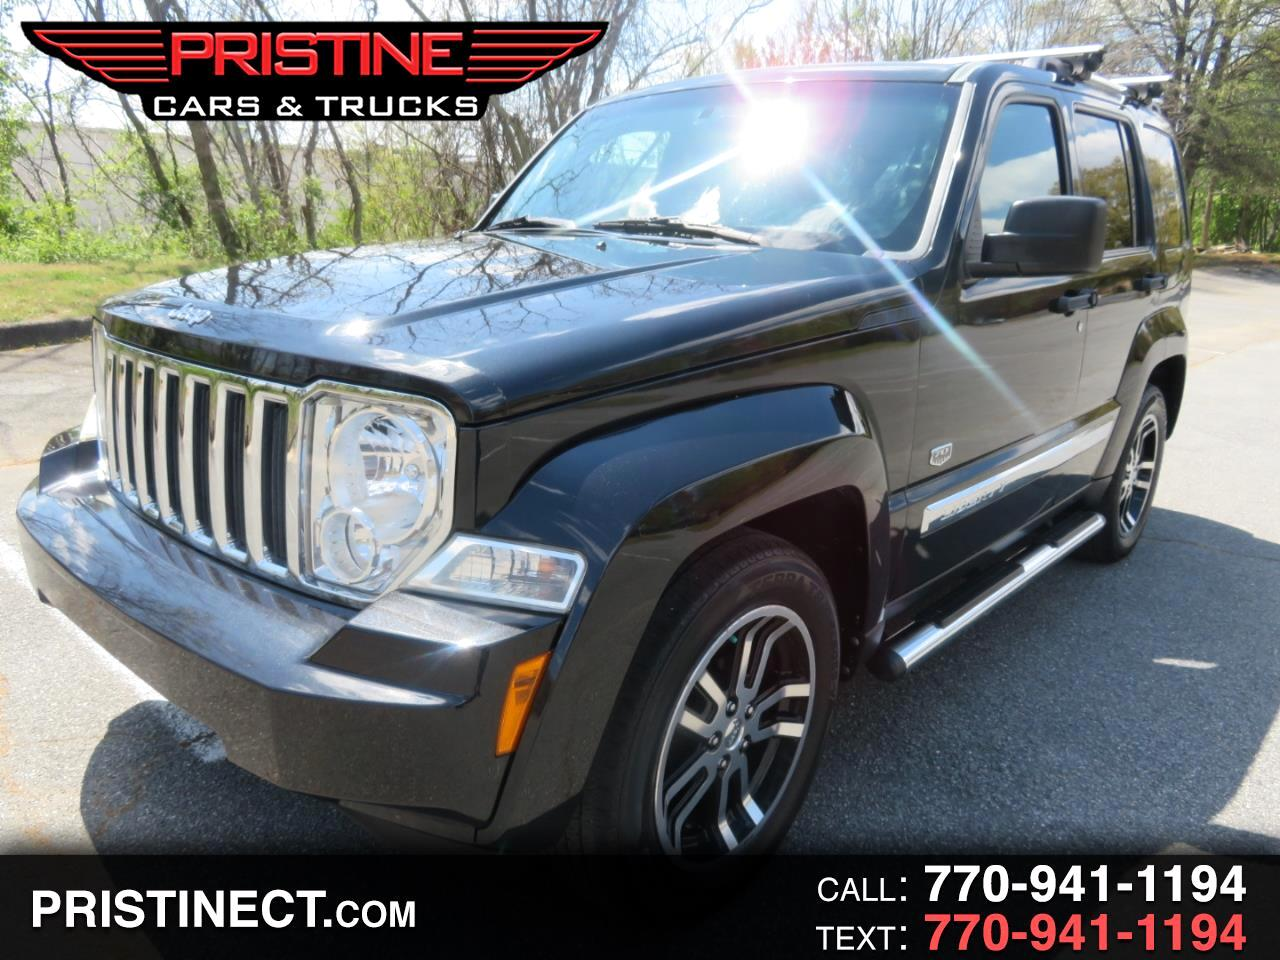 2011 Jeep Liberty RWD 4dr Limited 70th Anniversary